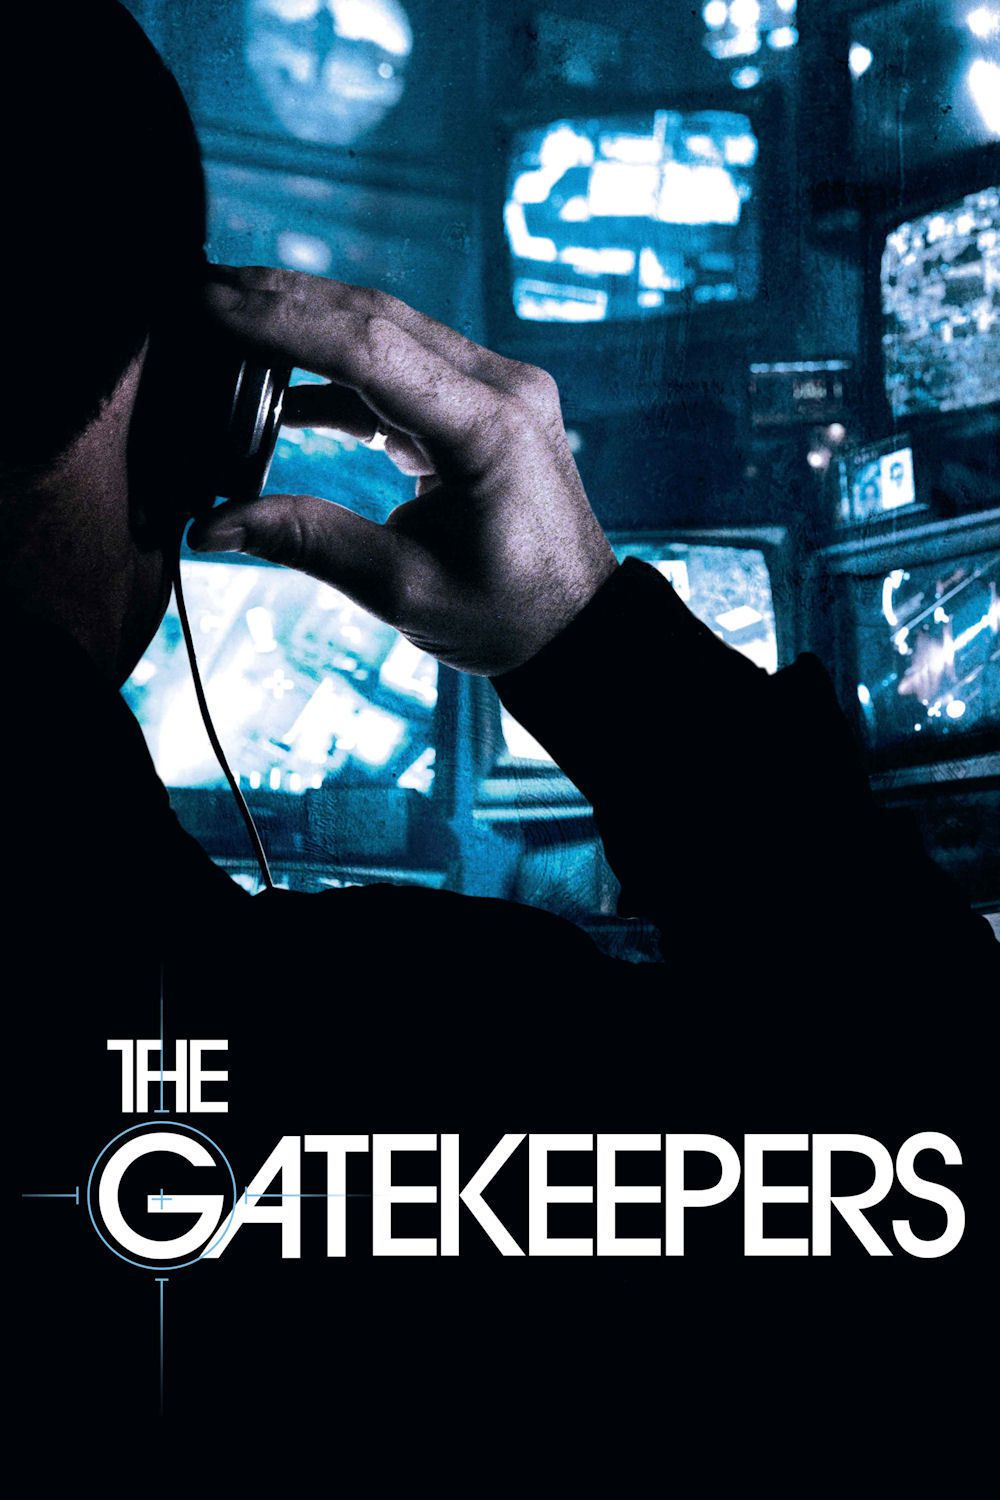 The Gatekeepers - Documentaire (2012) streaming VF gratuit complet